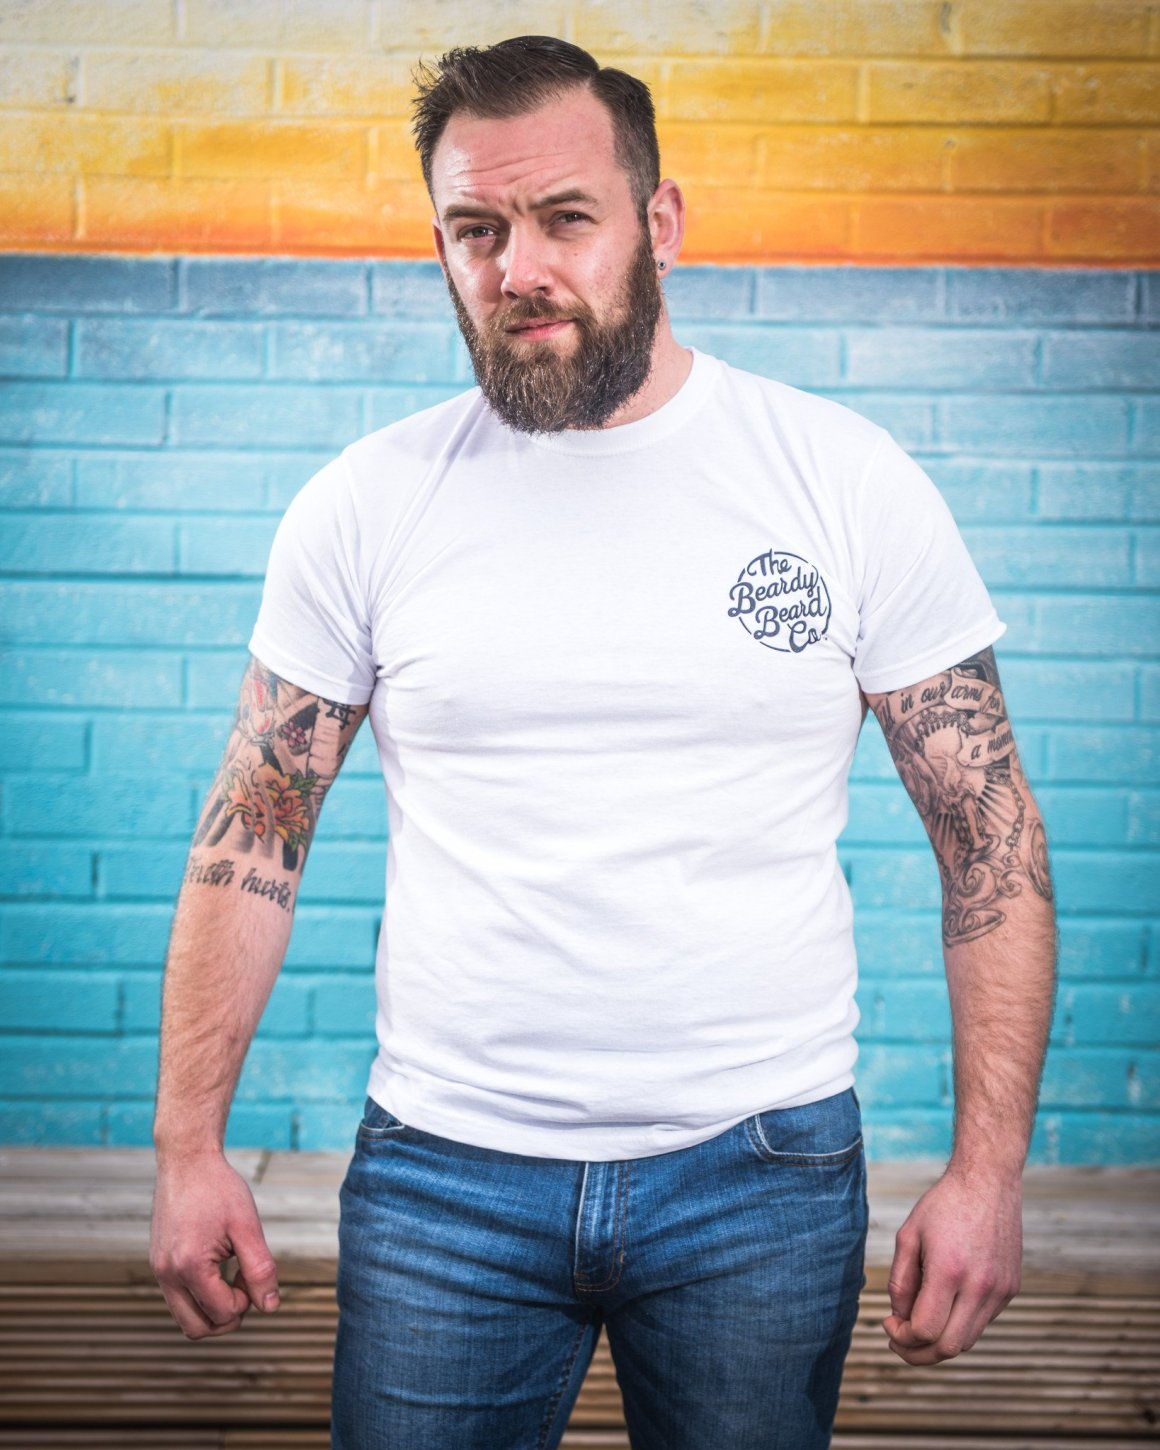 The beardy Beard Co Tee